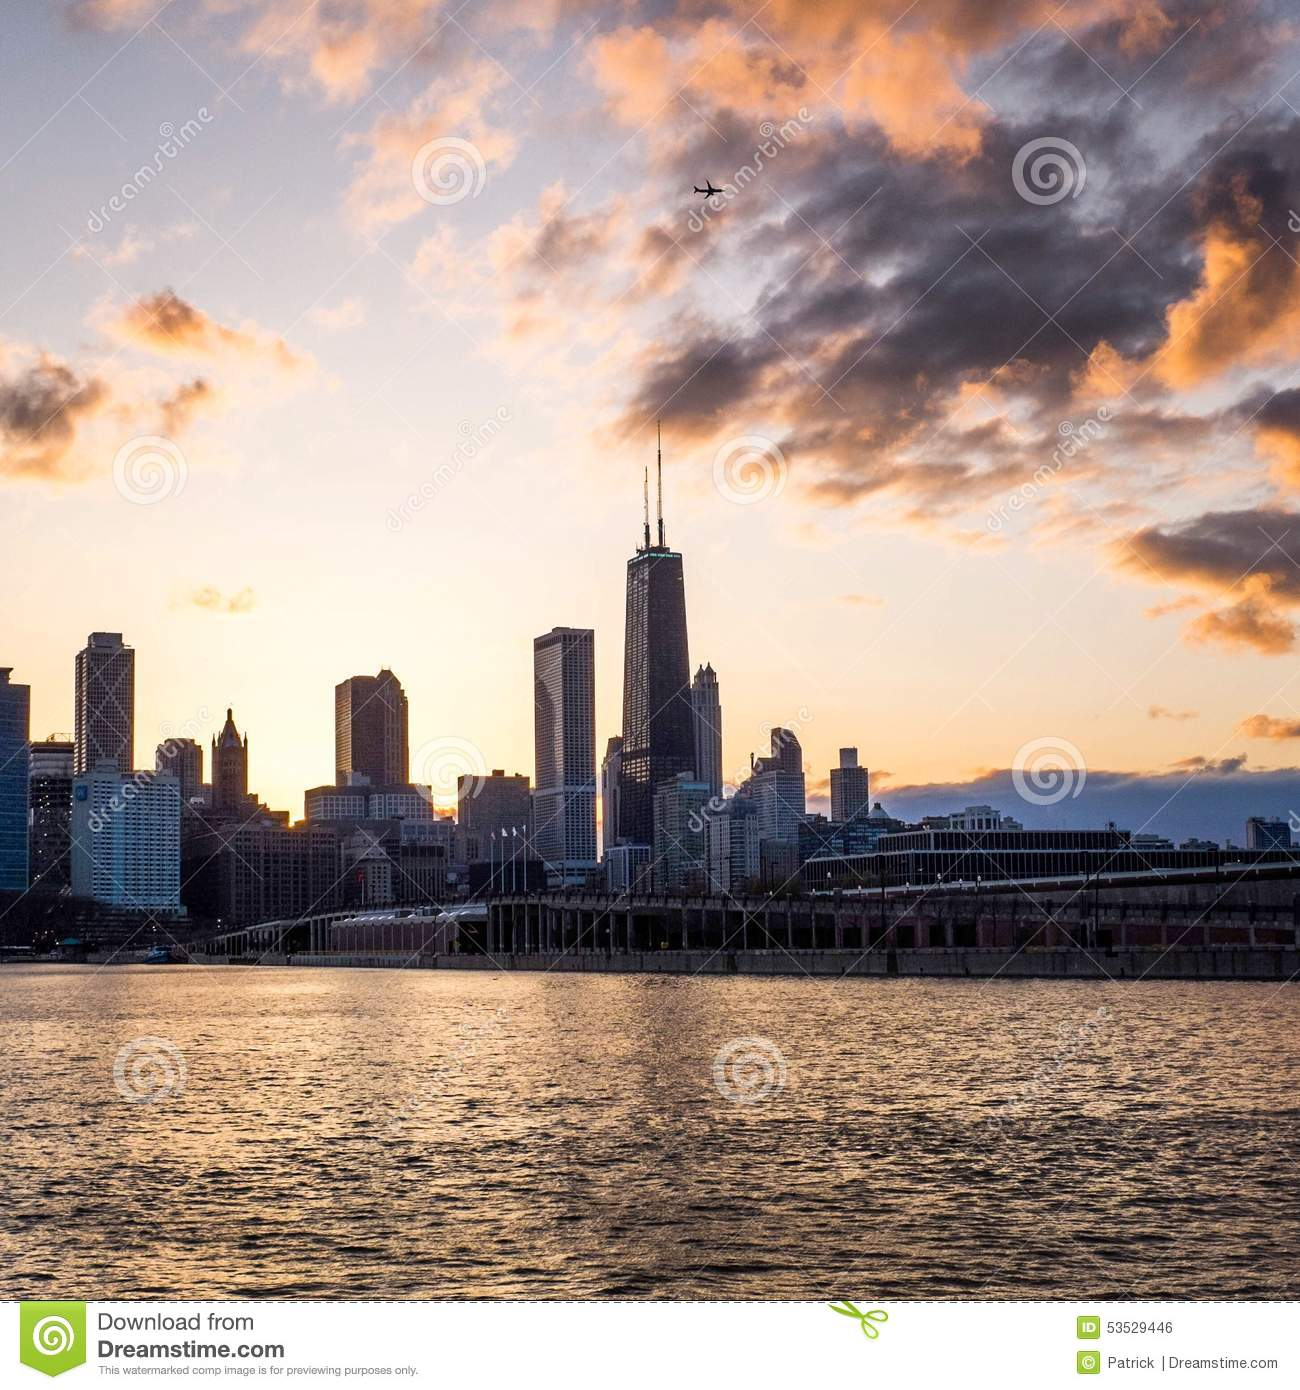 Skyline de Chicago no por do sol